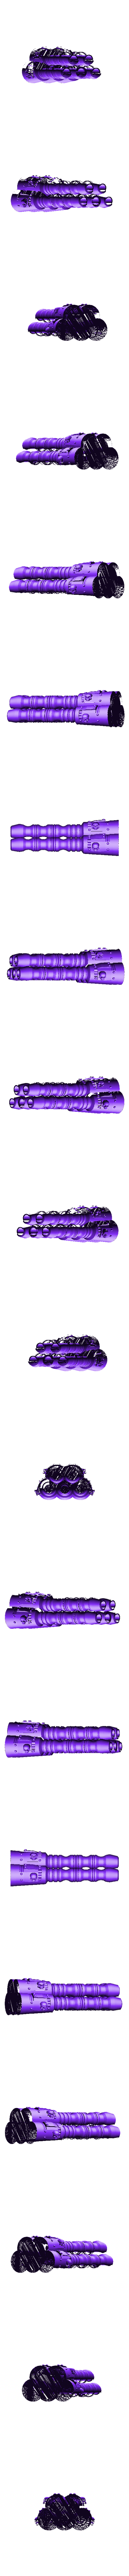 5_CANNON_B.stl Download free STL file IMPERIAL RAPID CANNON - ULTRA MEGA PACK ! • 3D printer template, yaemhay